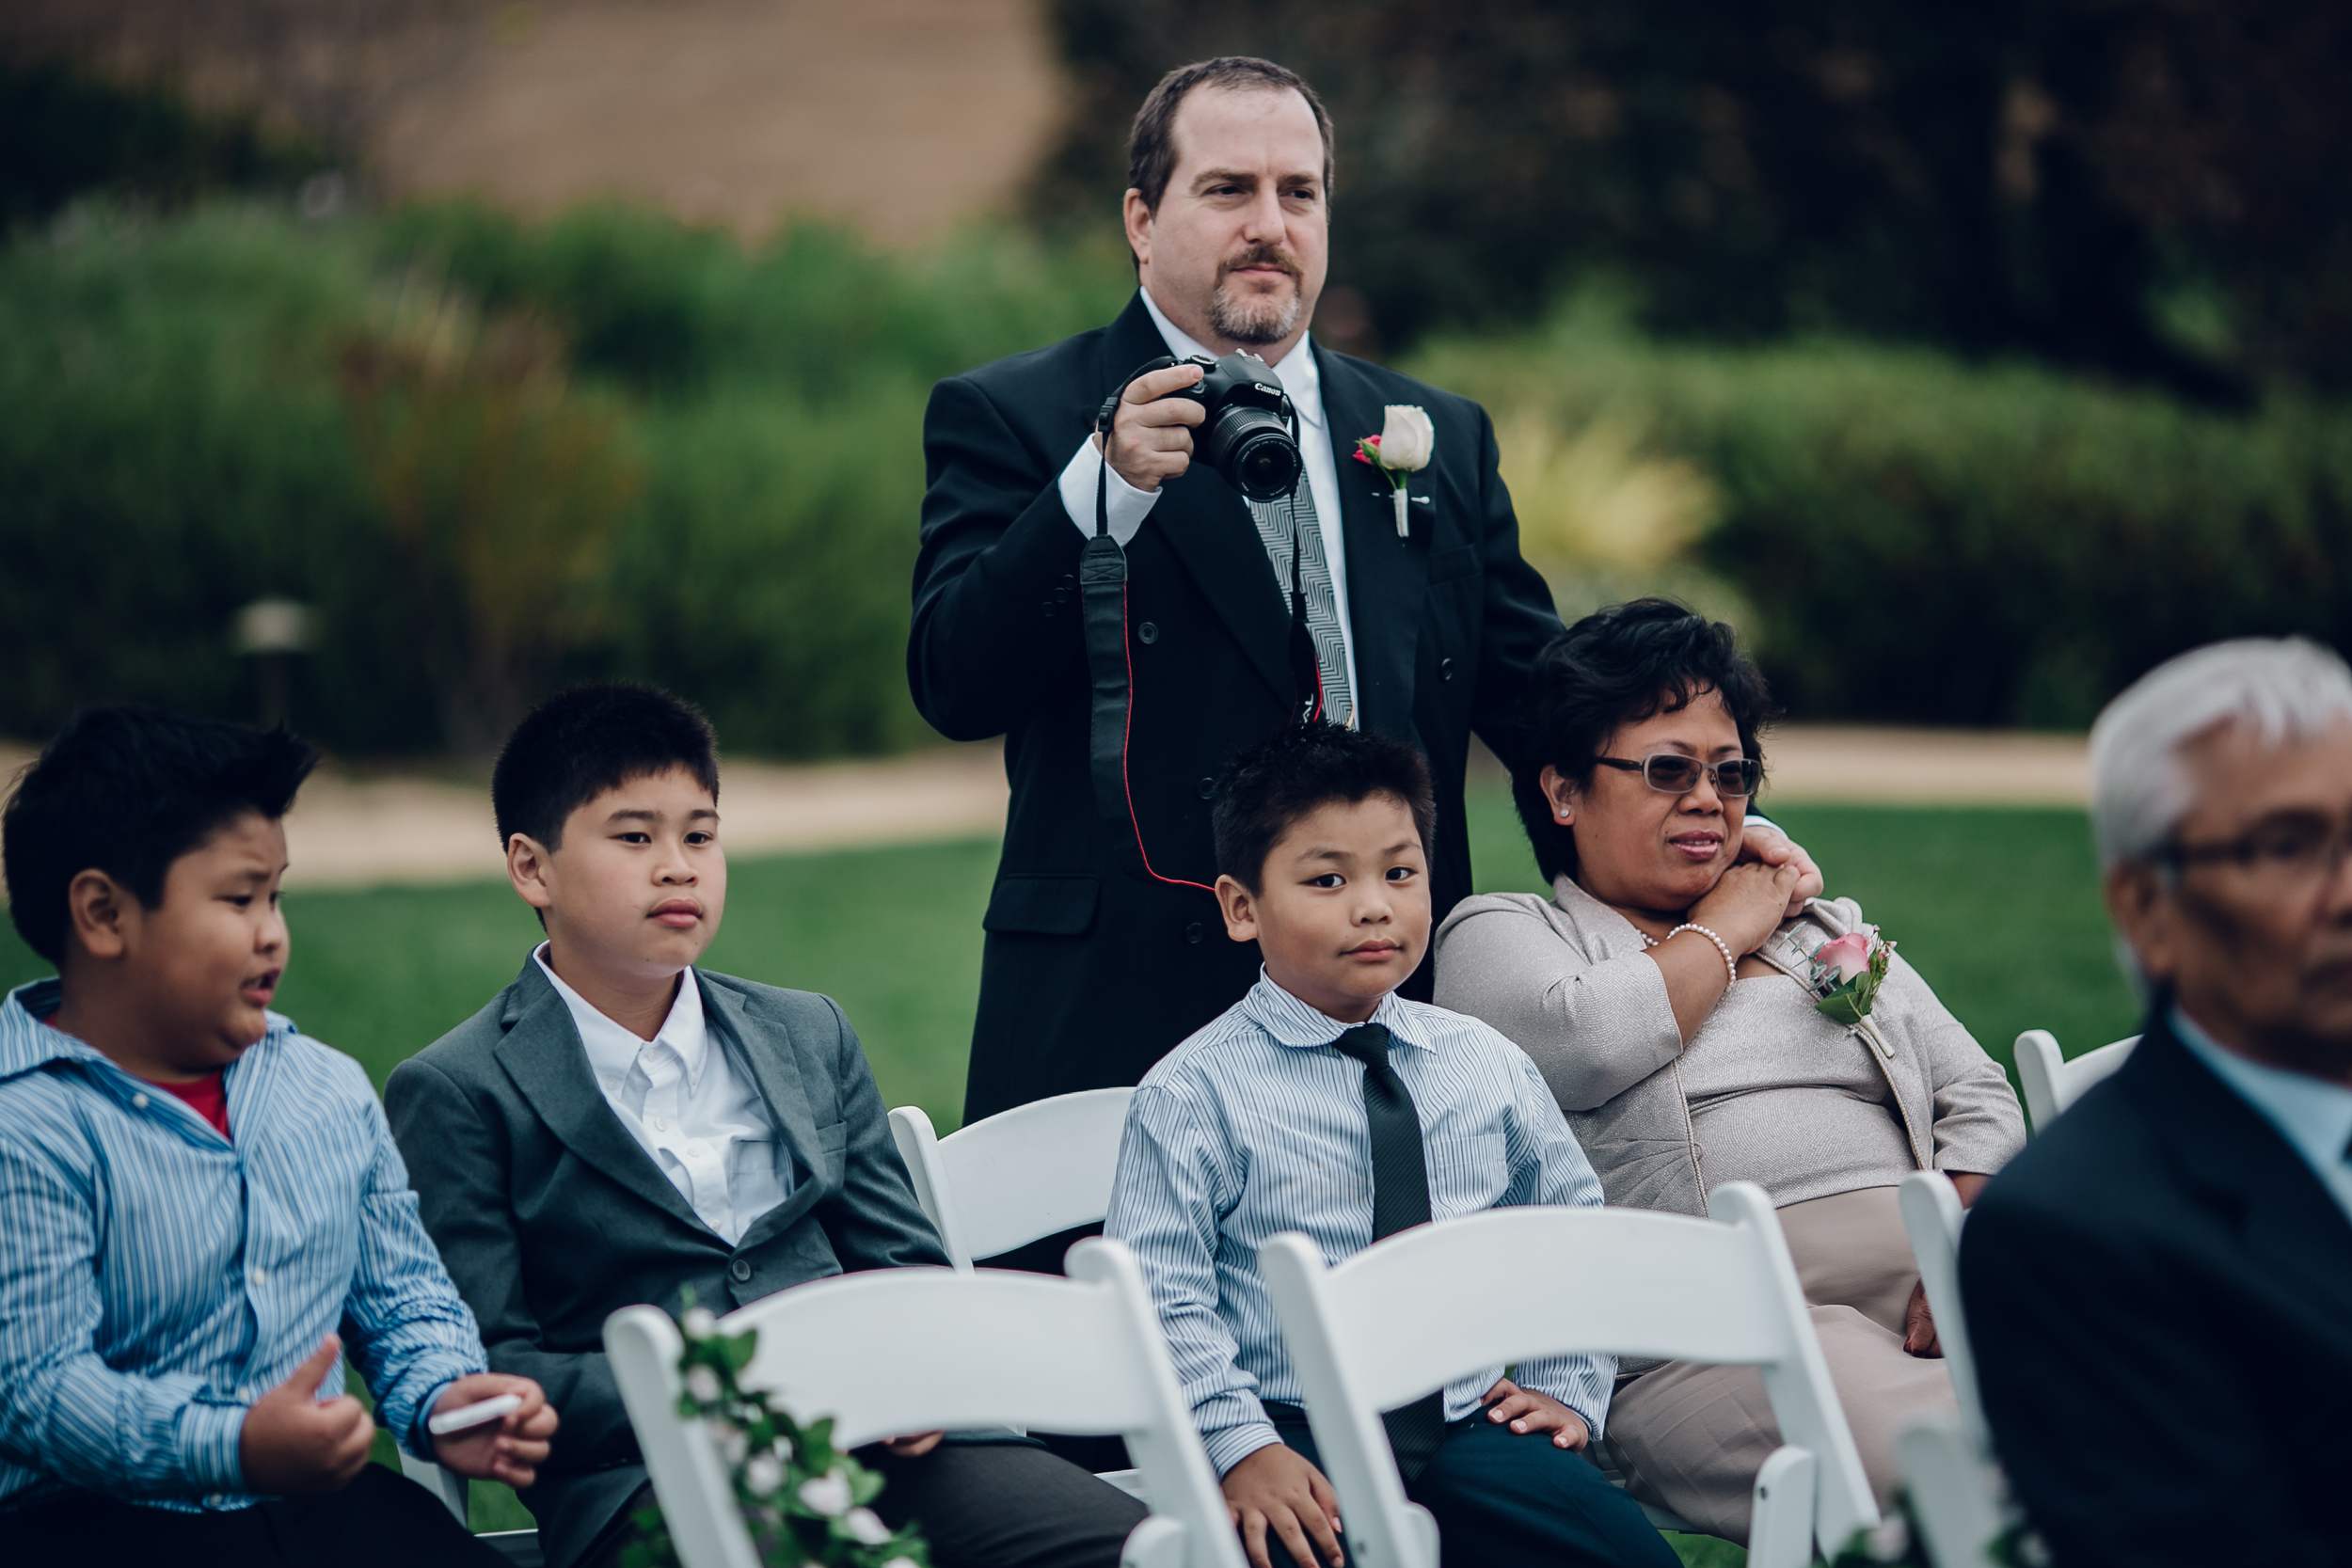 Shiela + Lester's Wedding 9-30-15 142.jpg